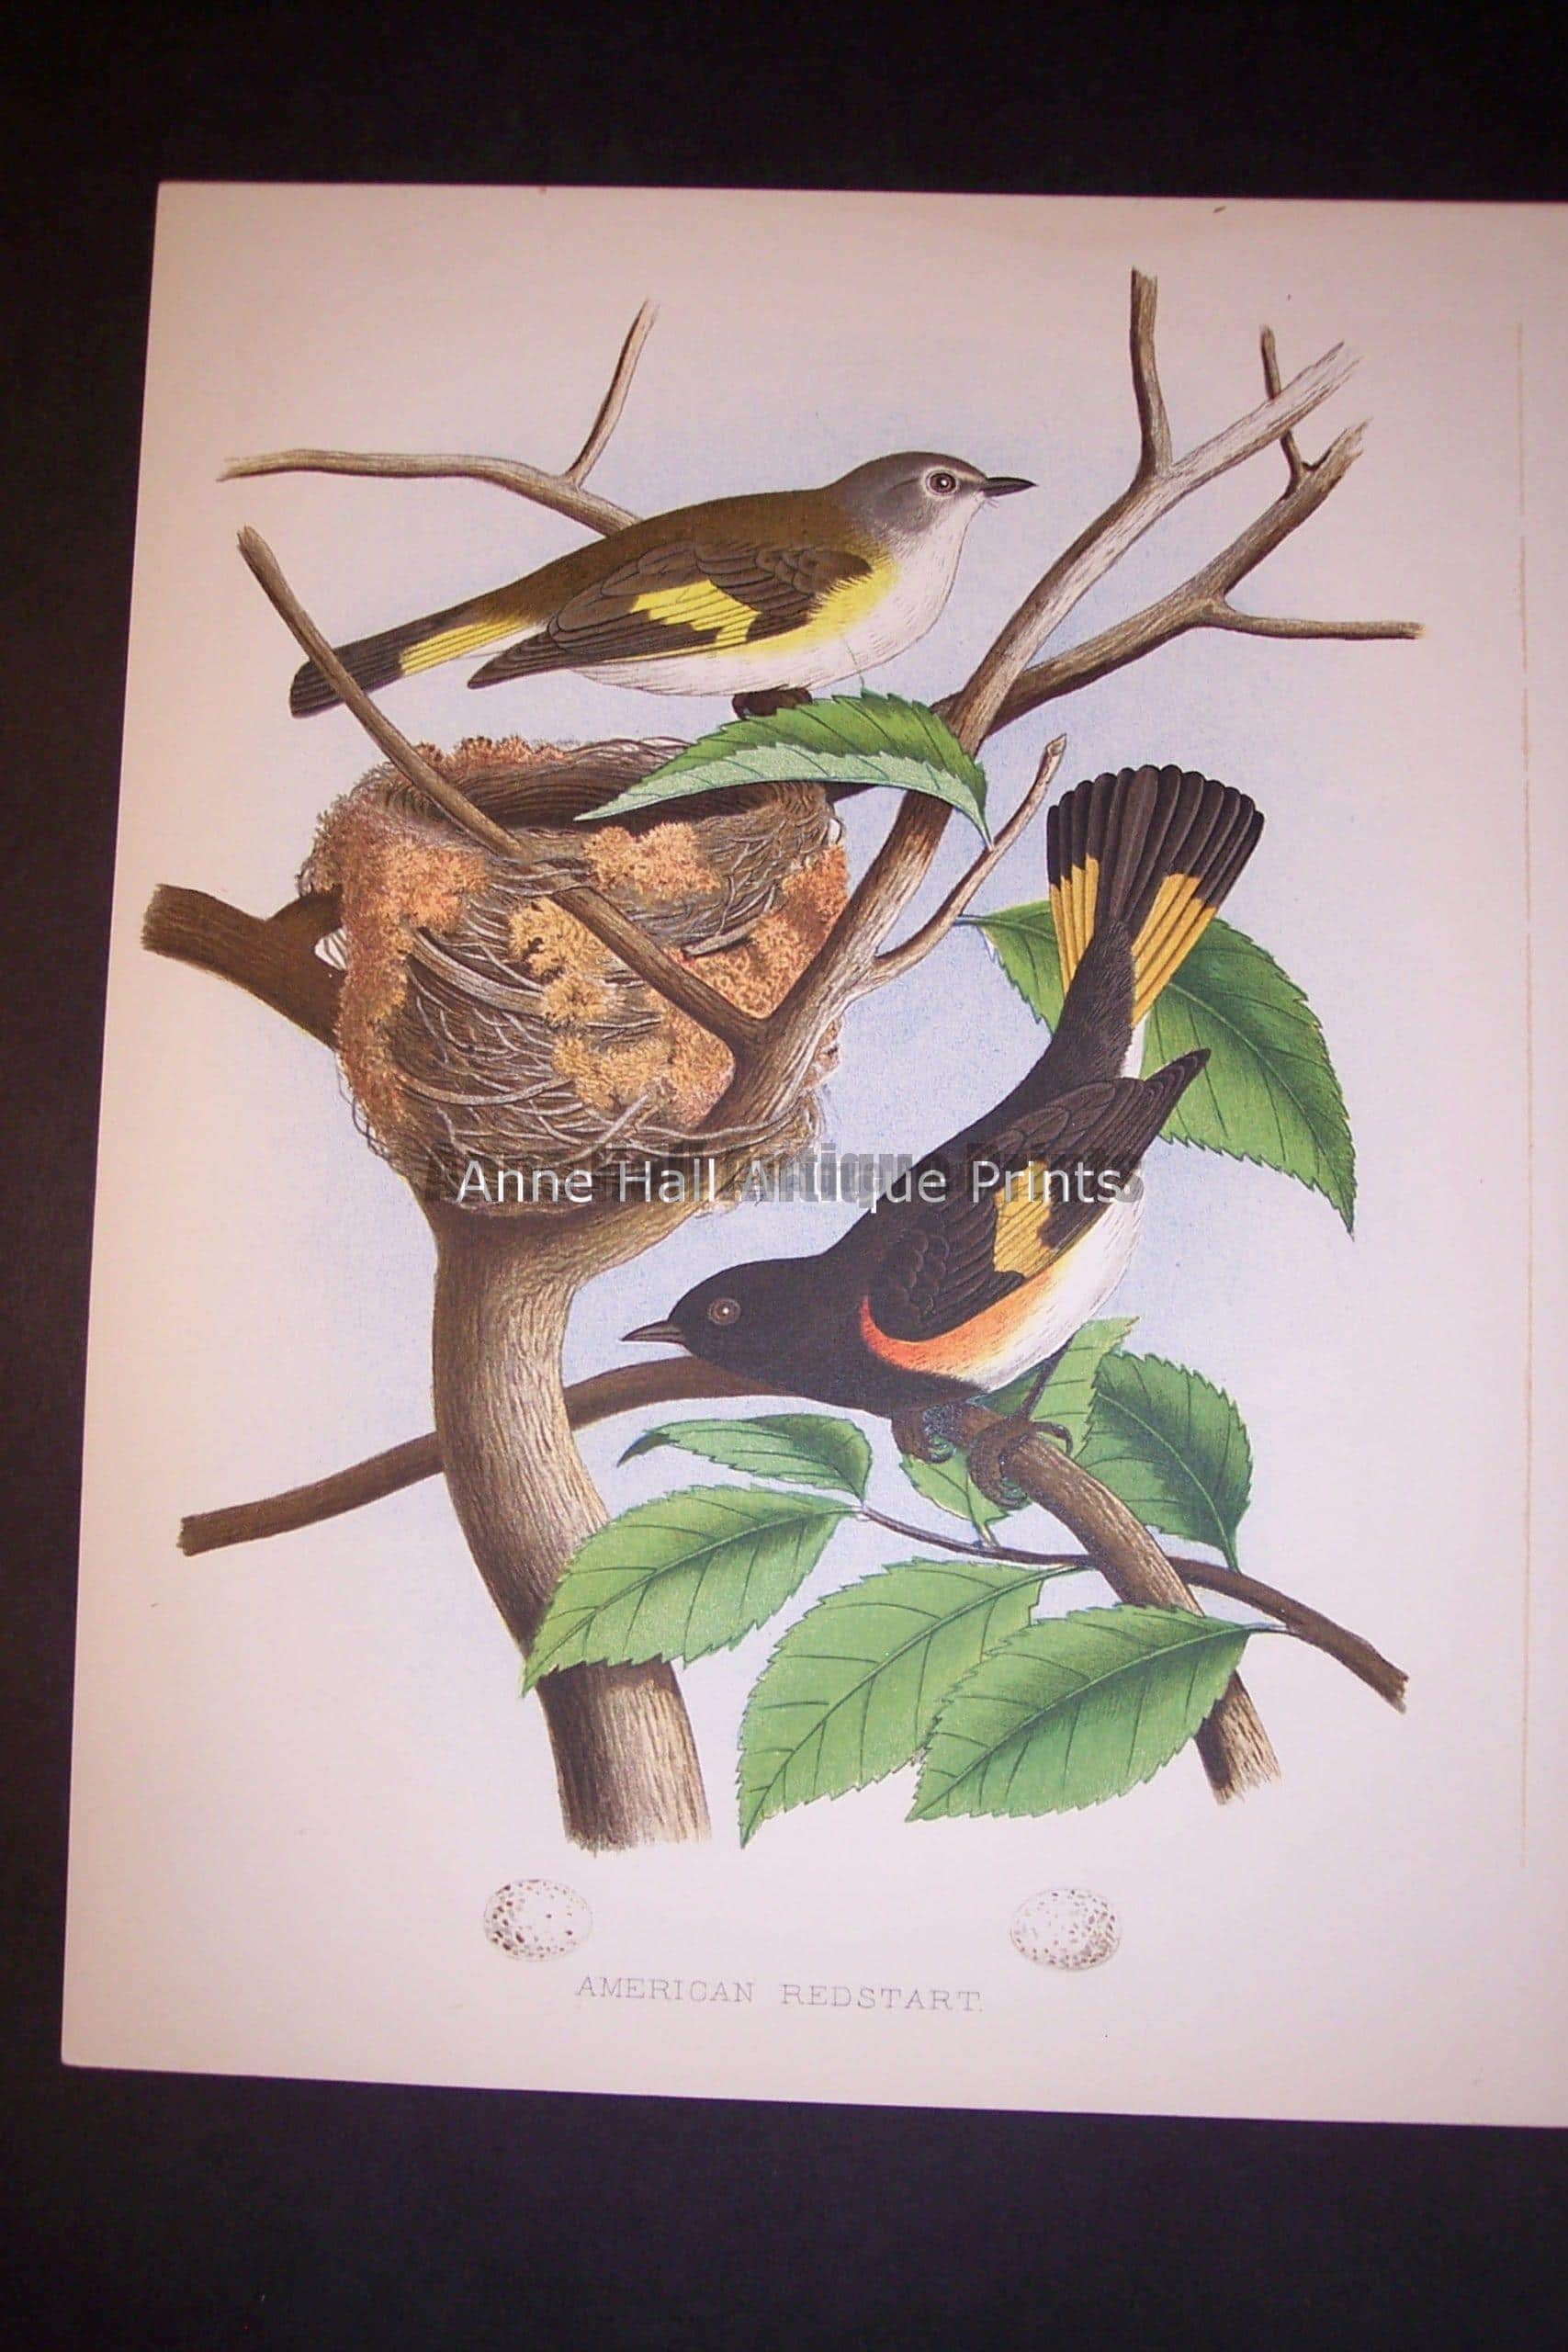 Thomas Gentry Chromolithograph from 1882 American Redstart 0222 100.